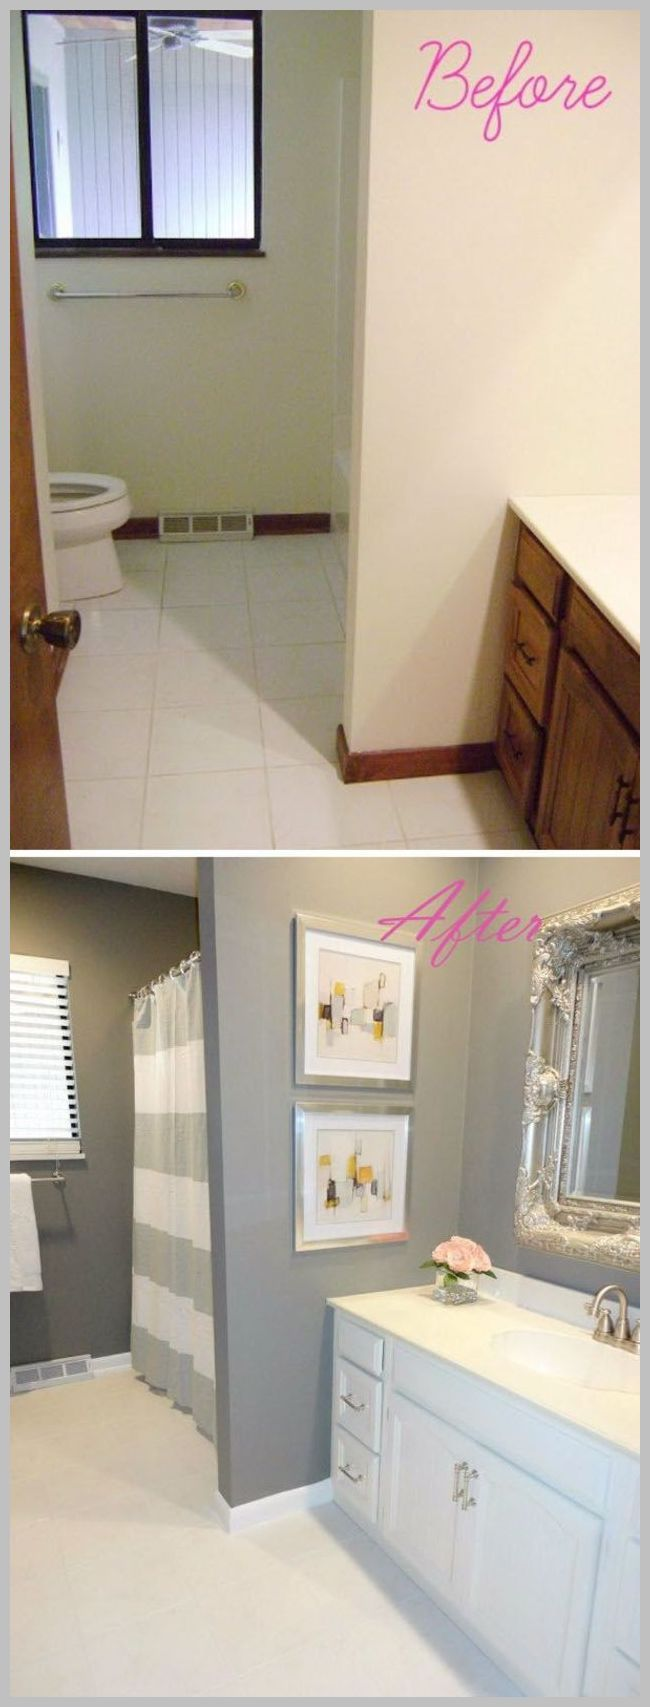 Choosing Room Decor For Girls And Boys Creating A Special Space You Will Both Love Room Decor Ideas Diy Bathroom Remodel Home Remodeling Bathrooms Remodel